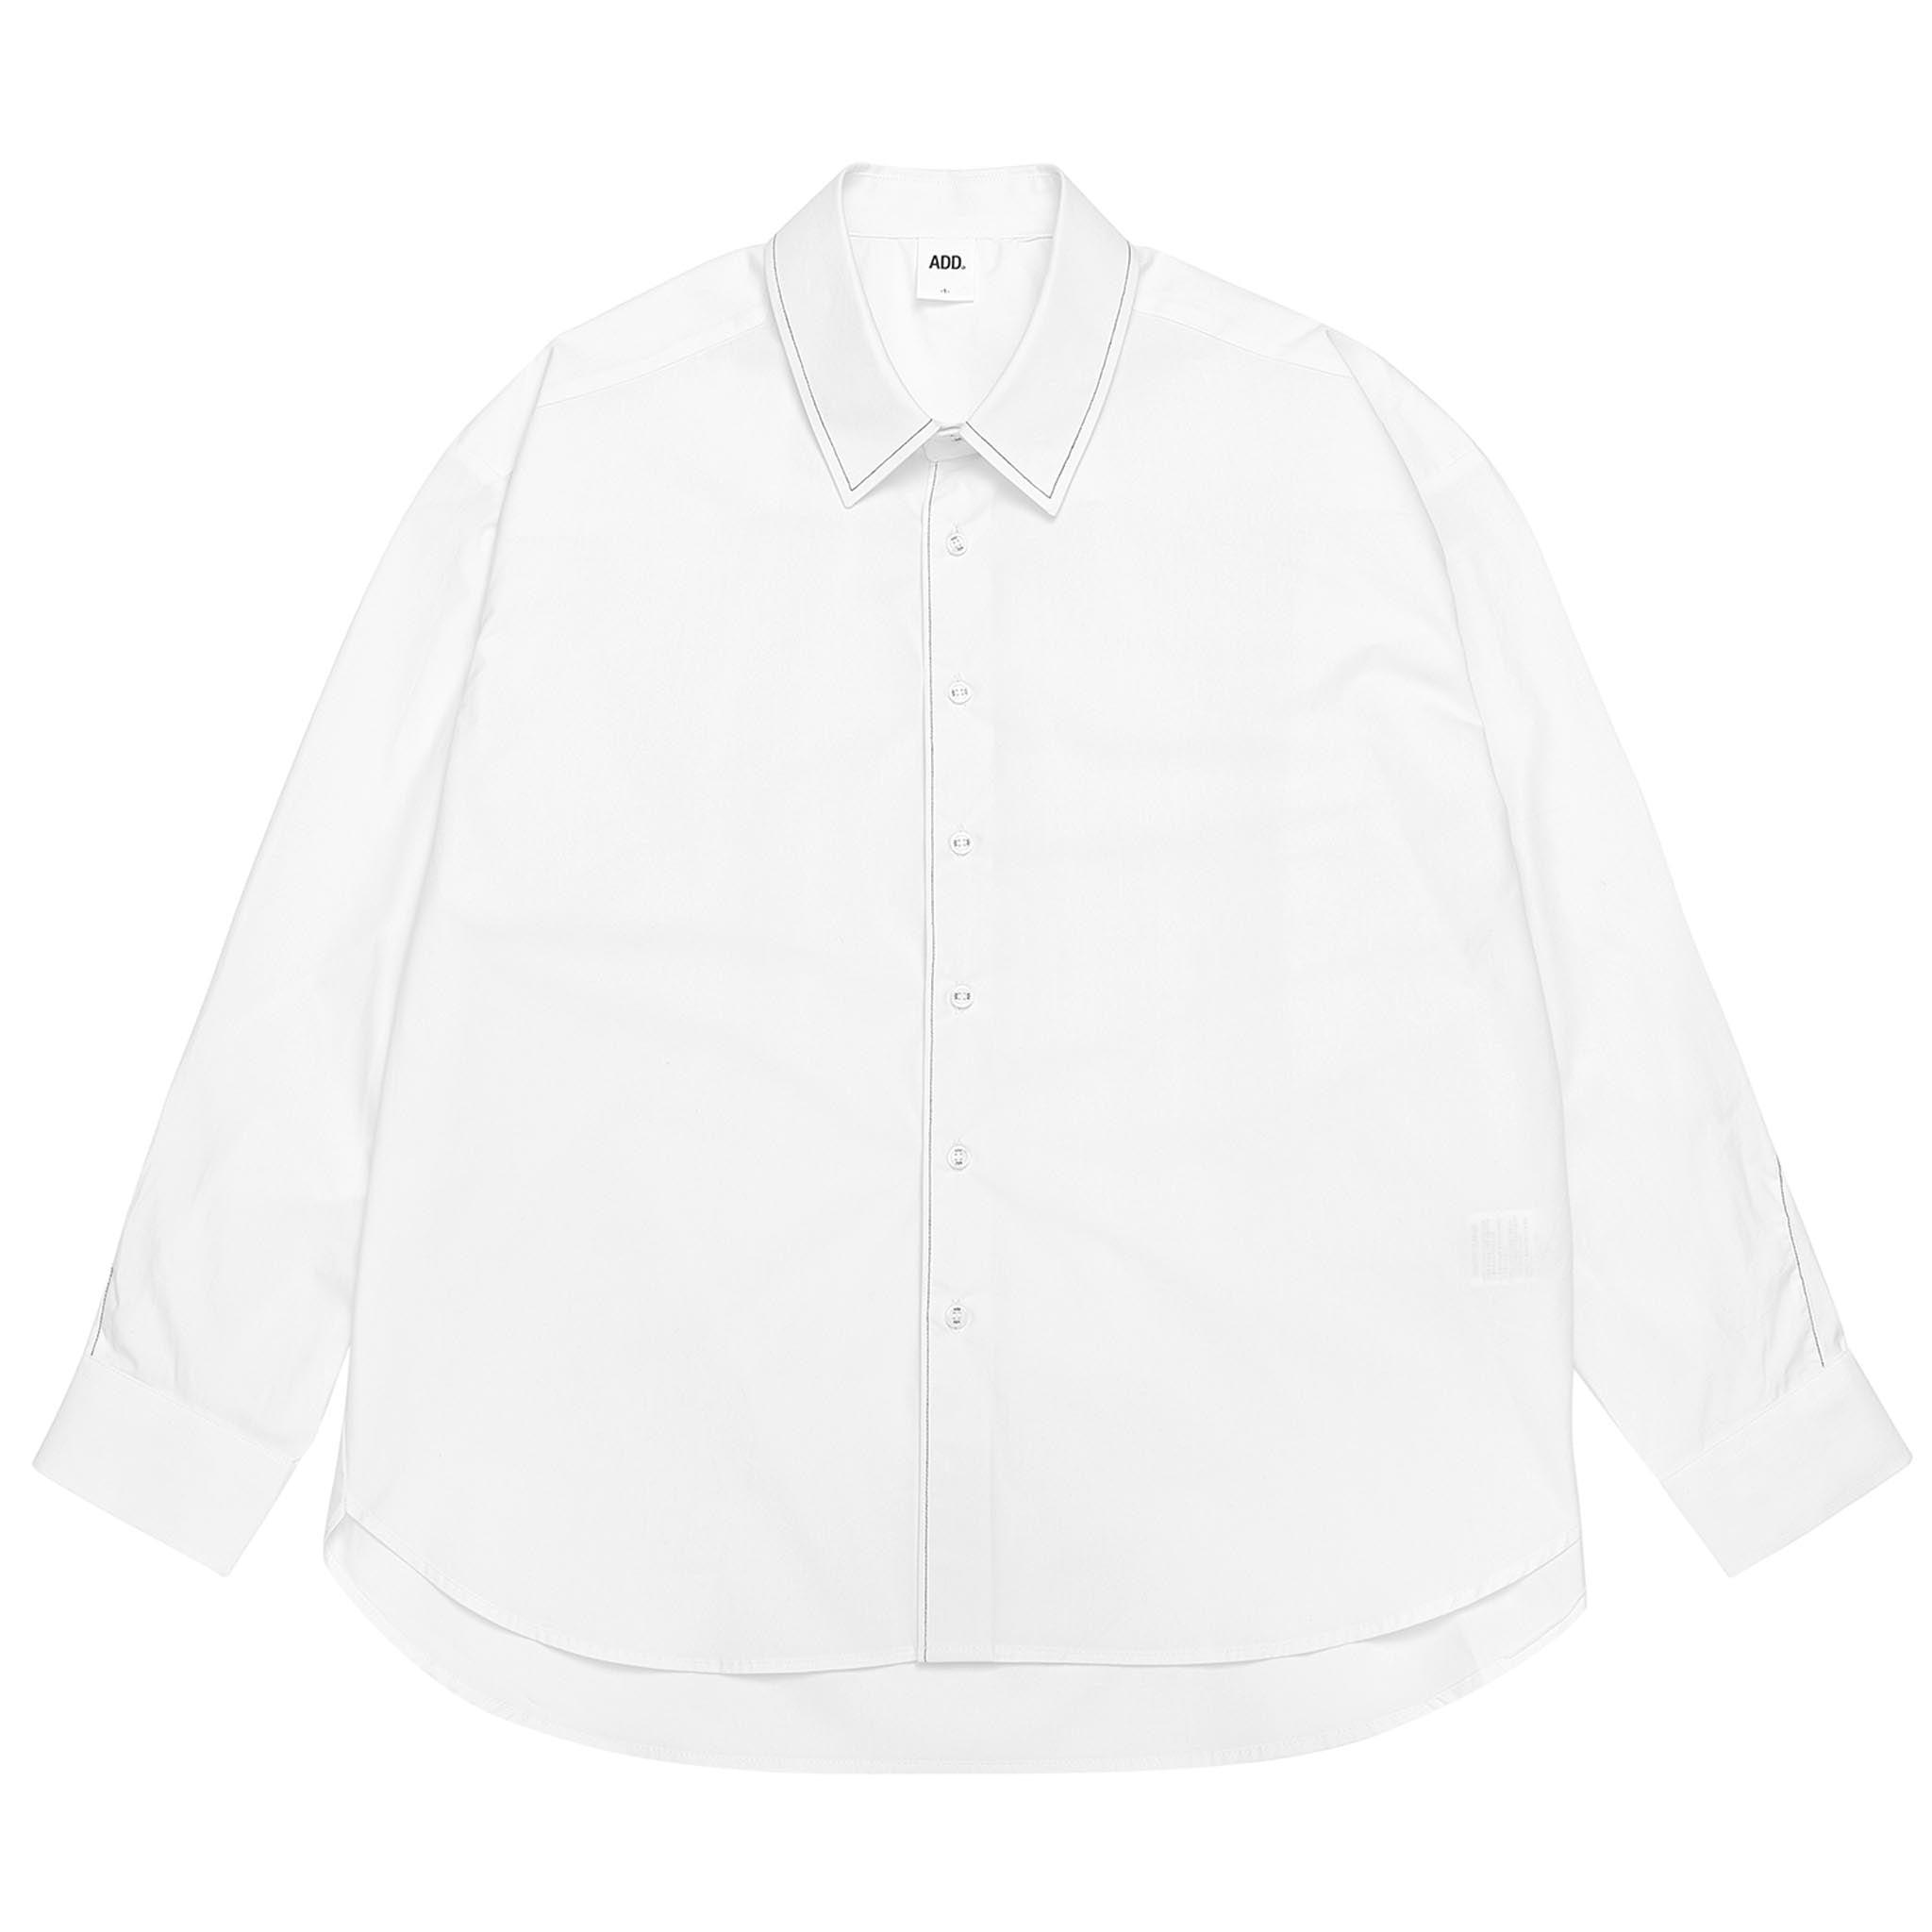 ADD Twist Sleeve Stitch Shirt White